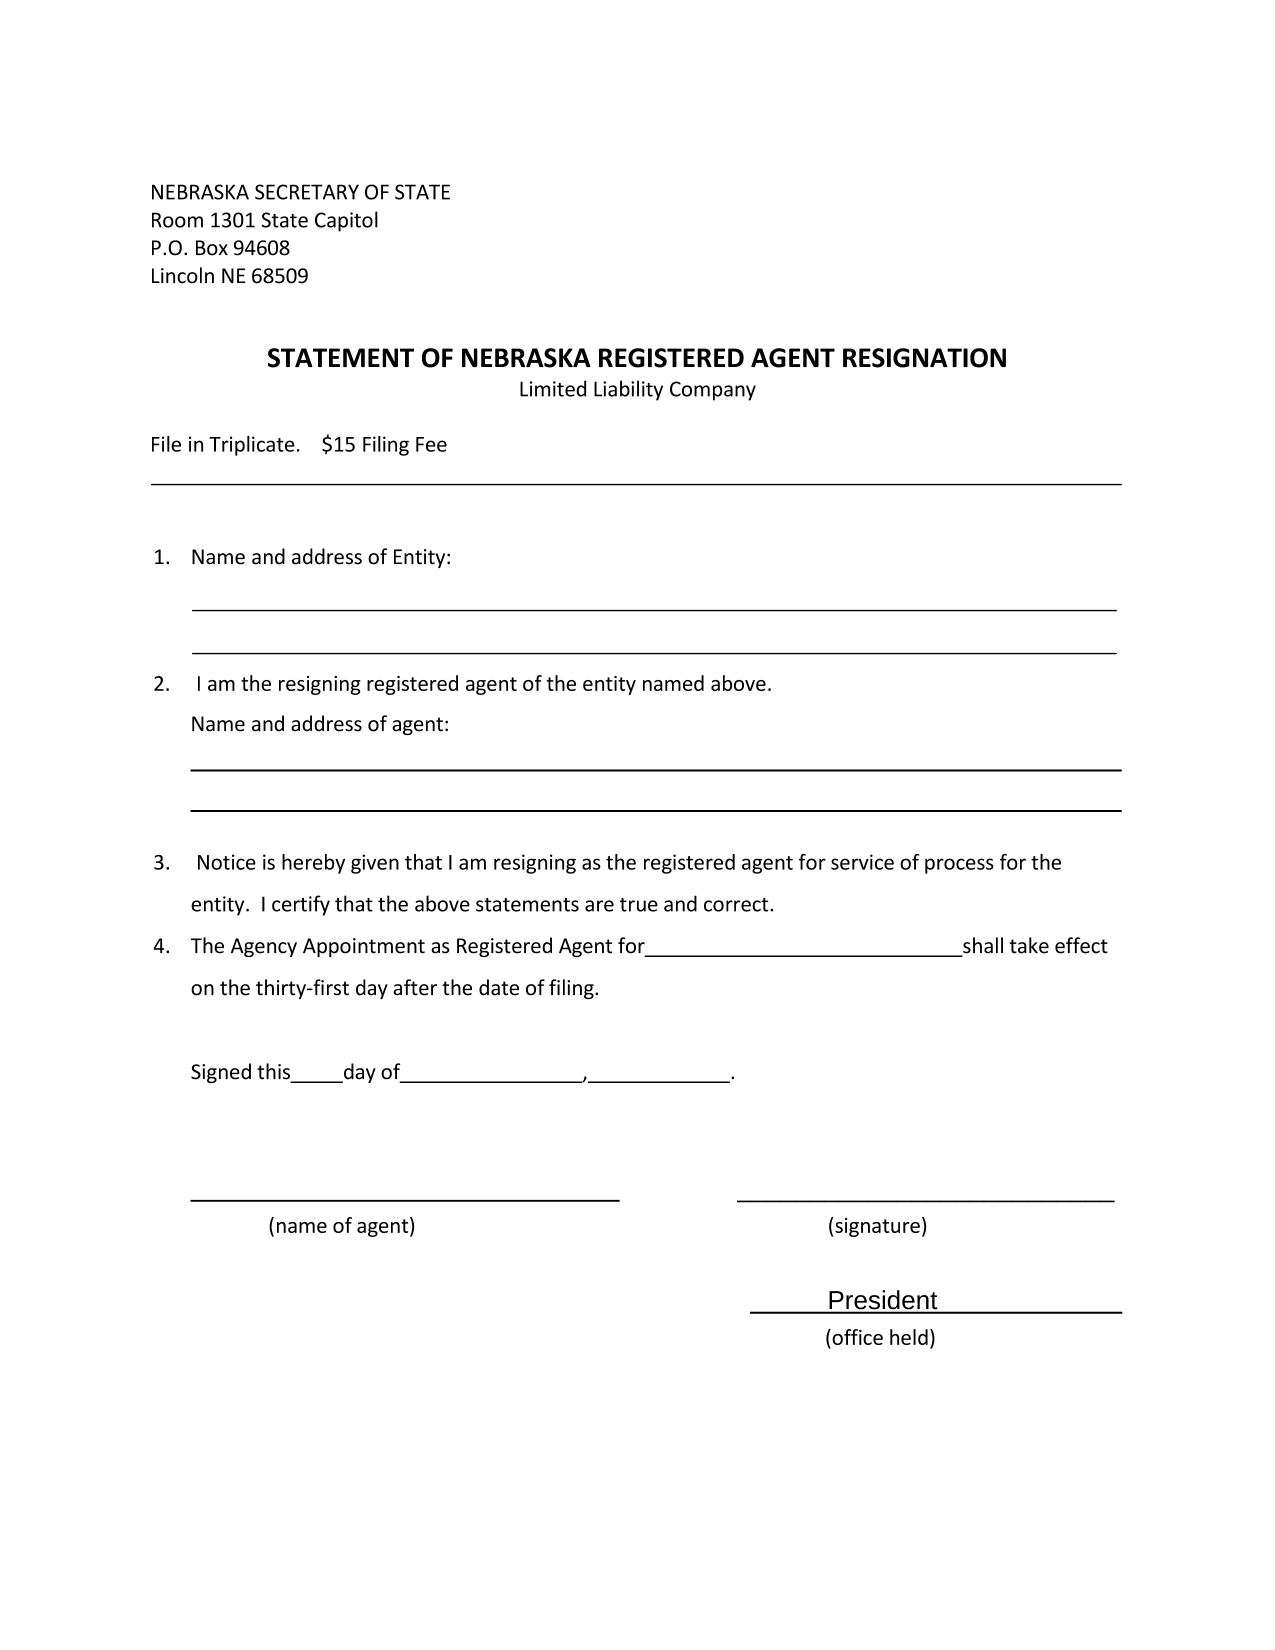 sample-statement-of-resignation-of-registered-agent